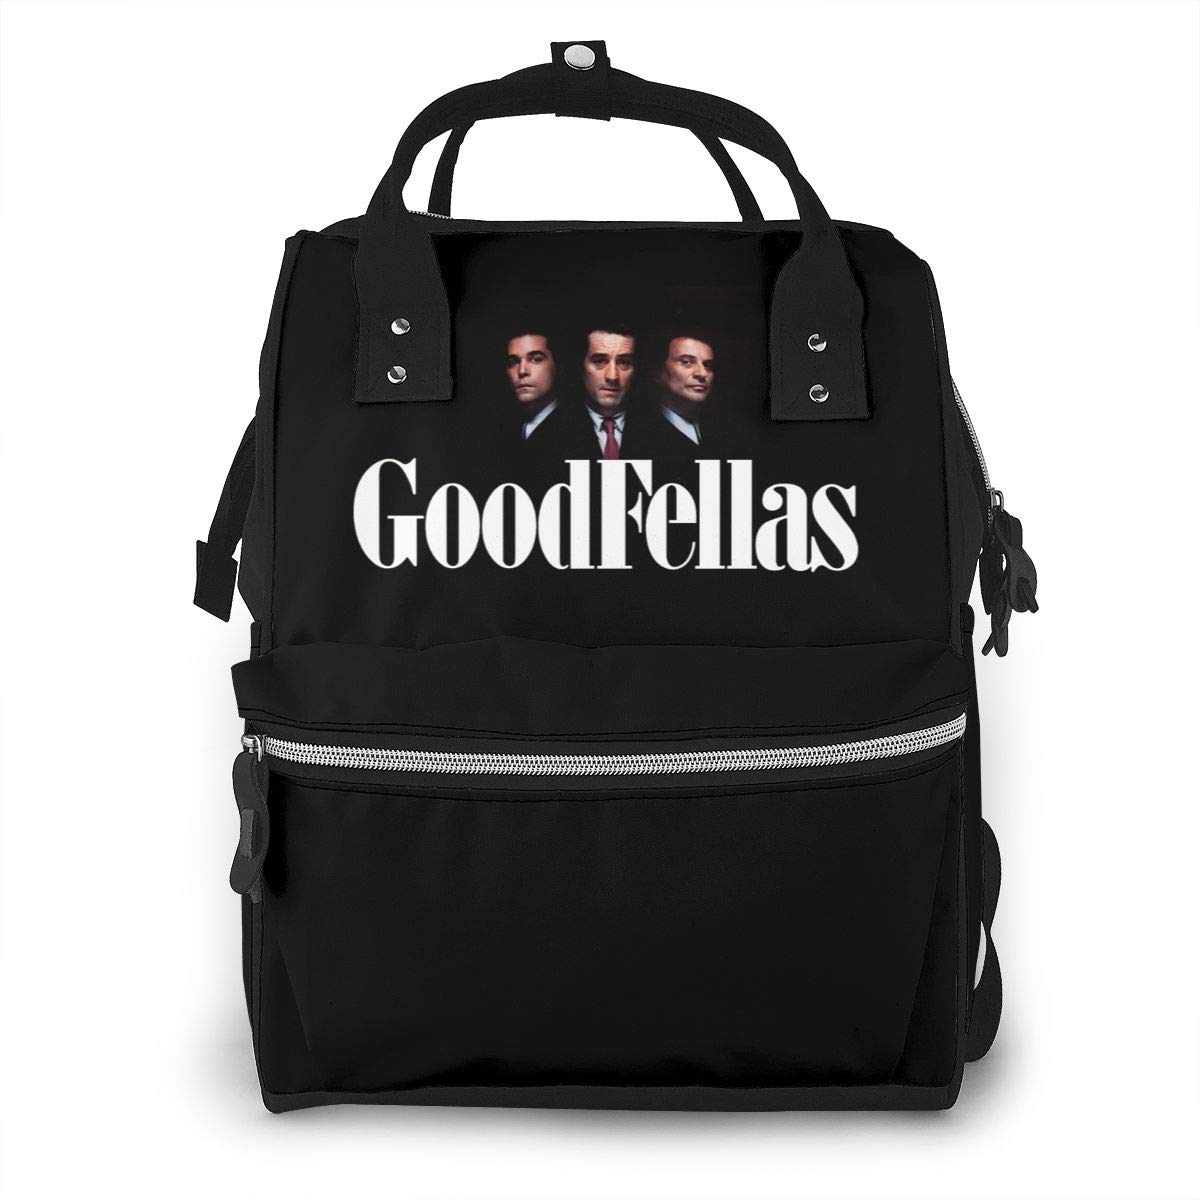 Goodfellas Diaper Bag Multi-Function Waterproof Travel Backpack Nappy Bags for Baby Care Mummy Backpack